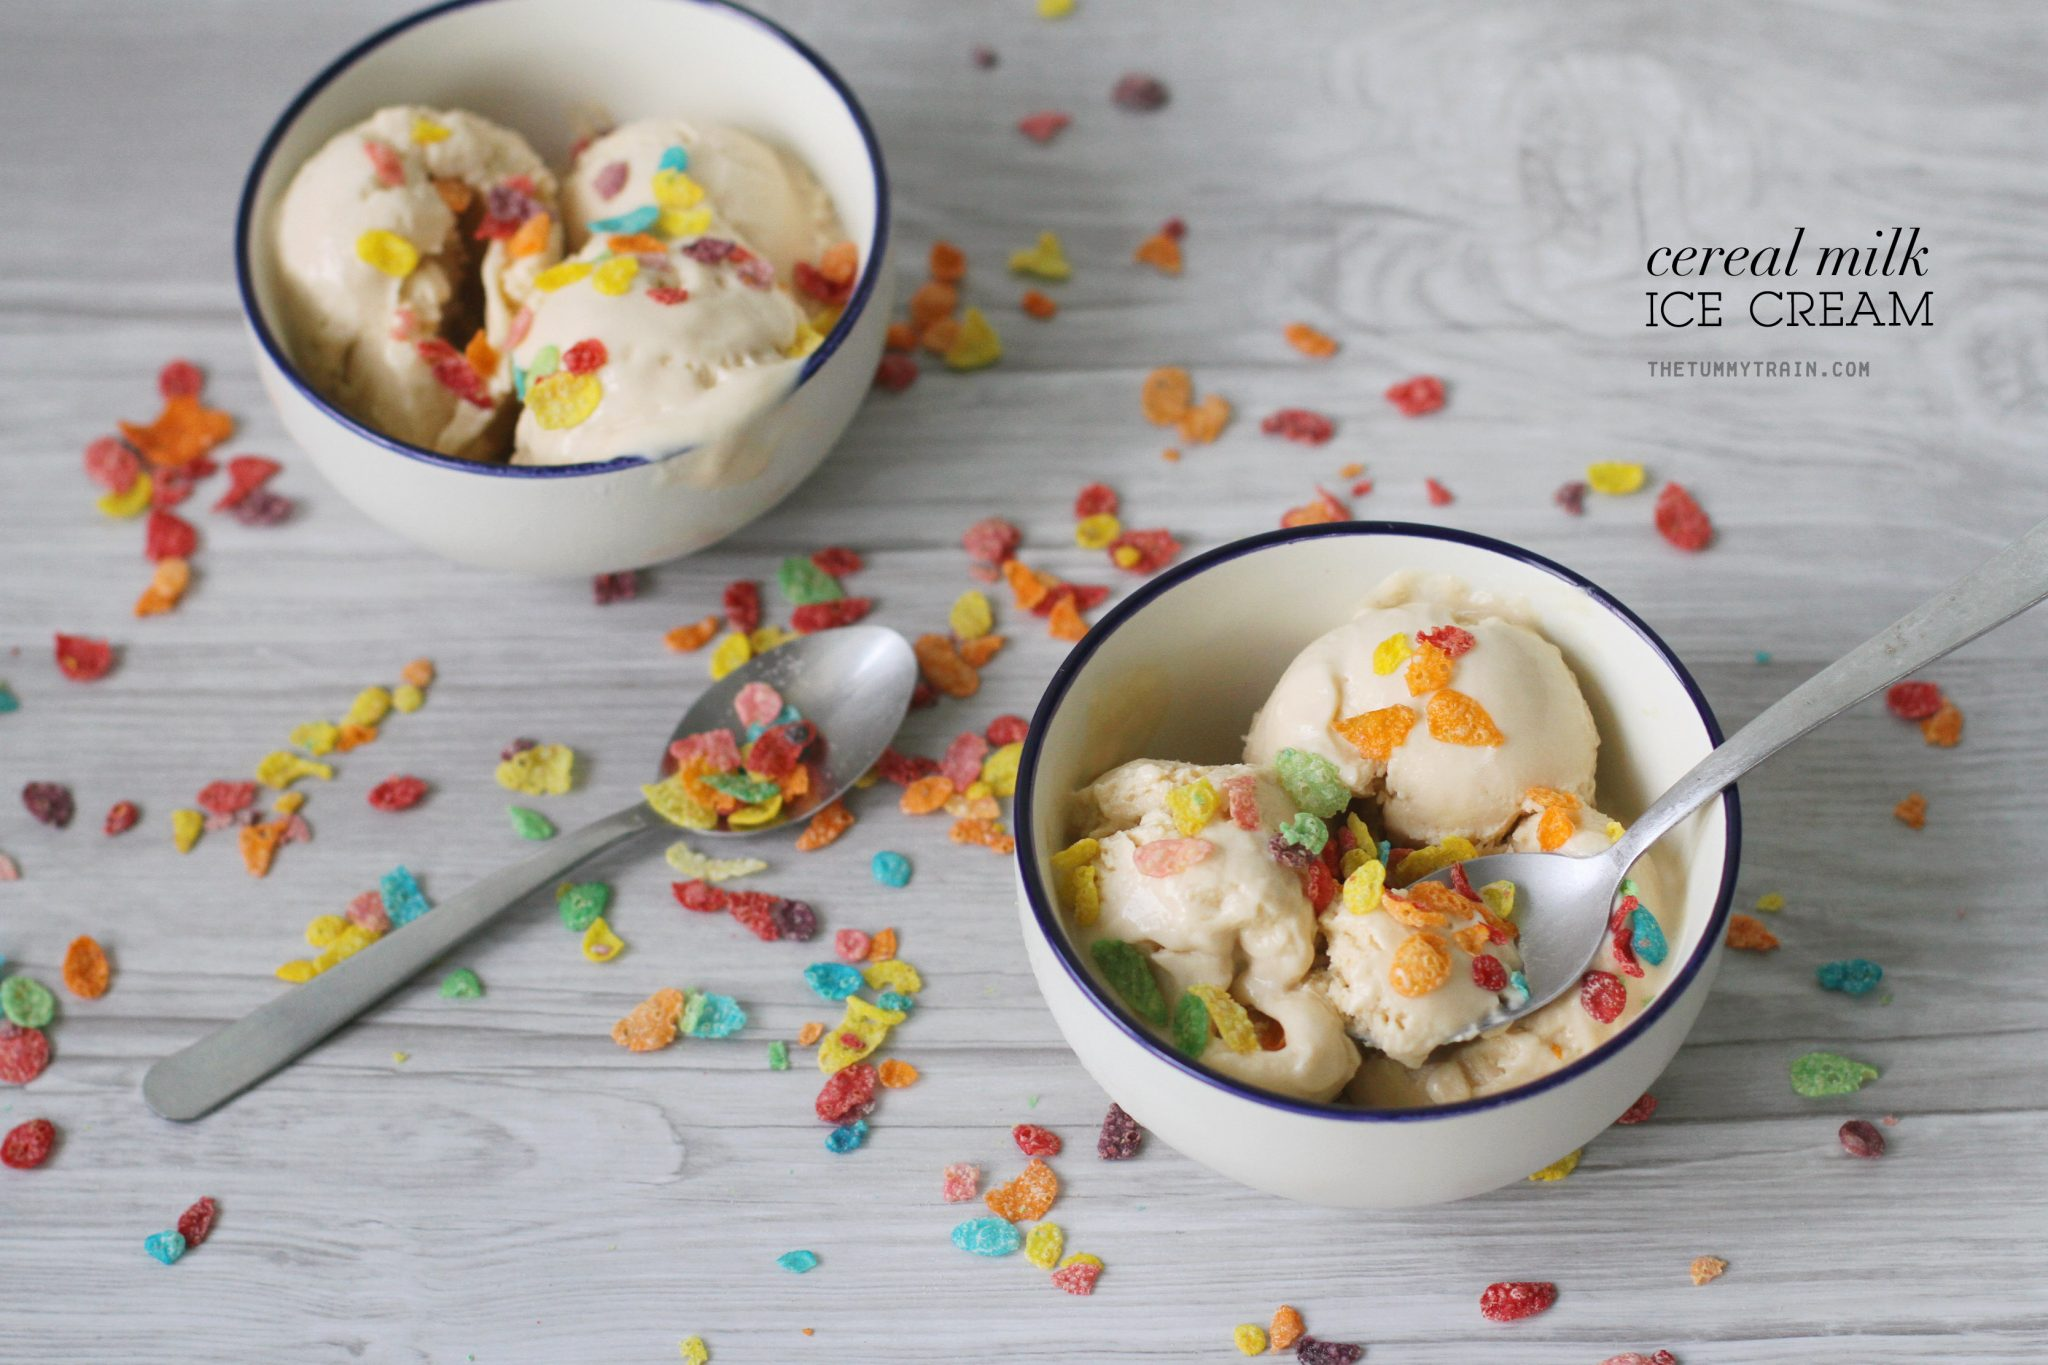 Cereal Milk Ice Cream 1 - A Sweet Cereal Milk Ice Cream to bring you back to your childhood